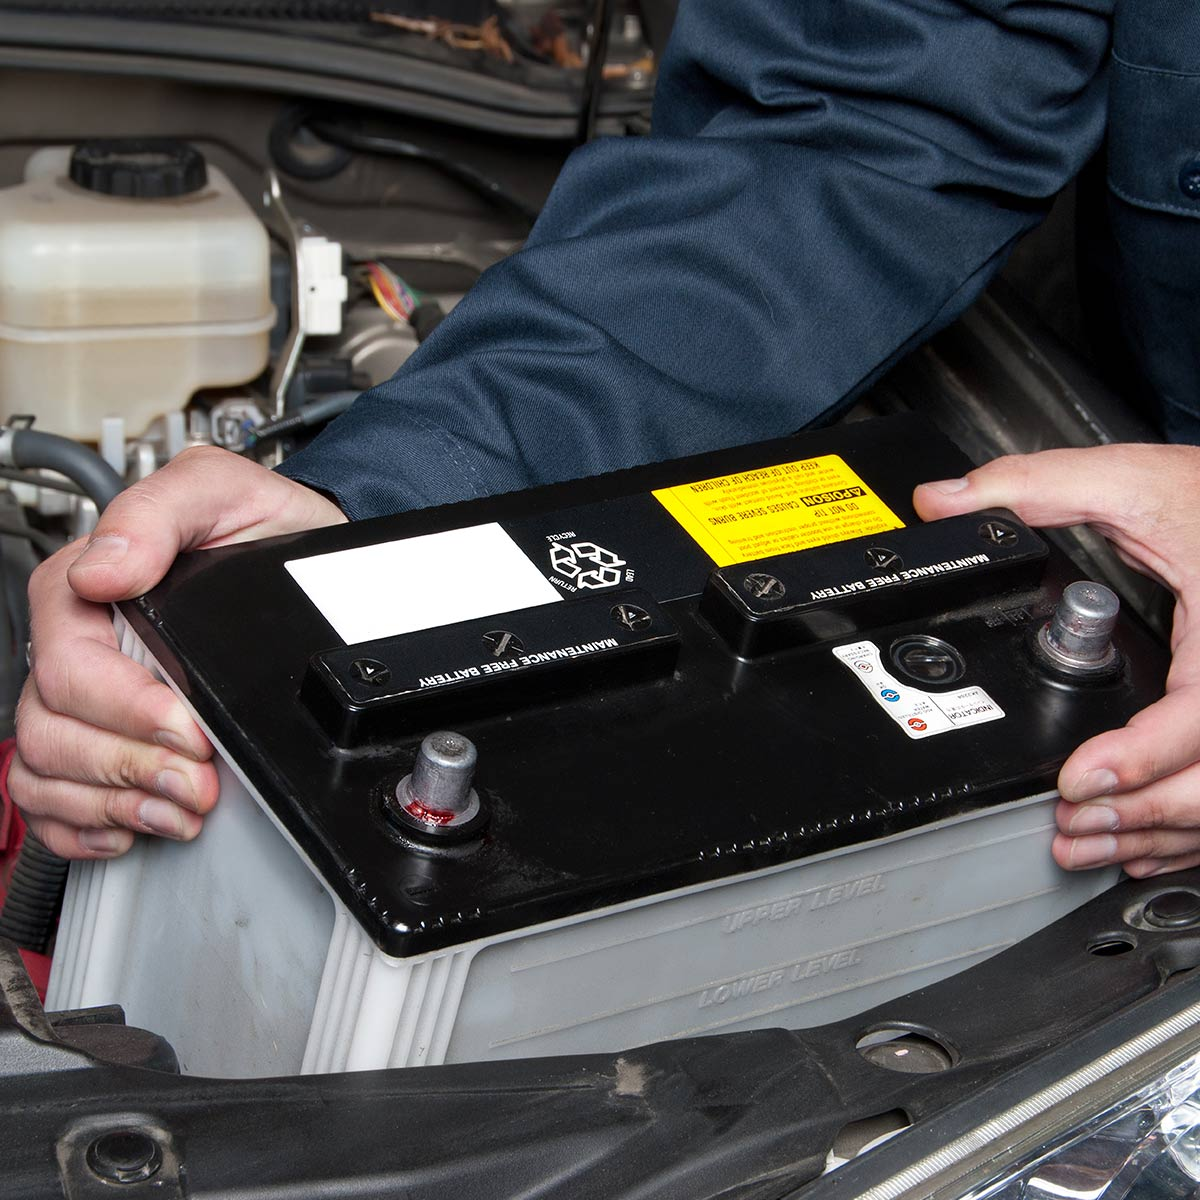 Volkswagen Tiguan Battery Replacement Costs Repairs Autoguru